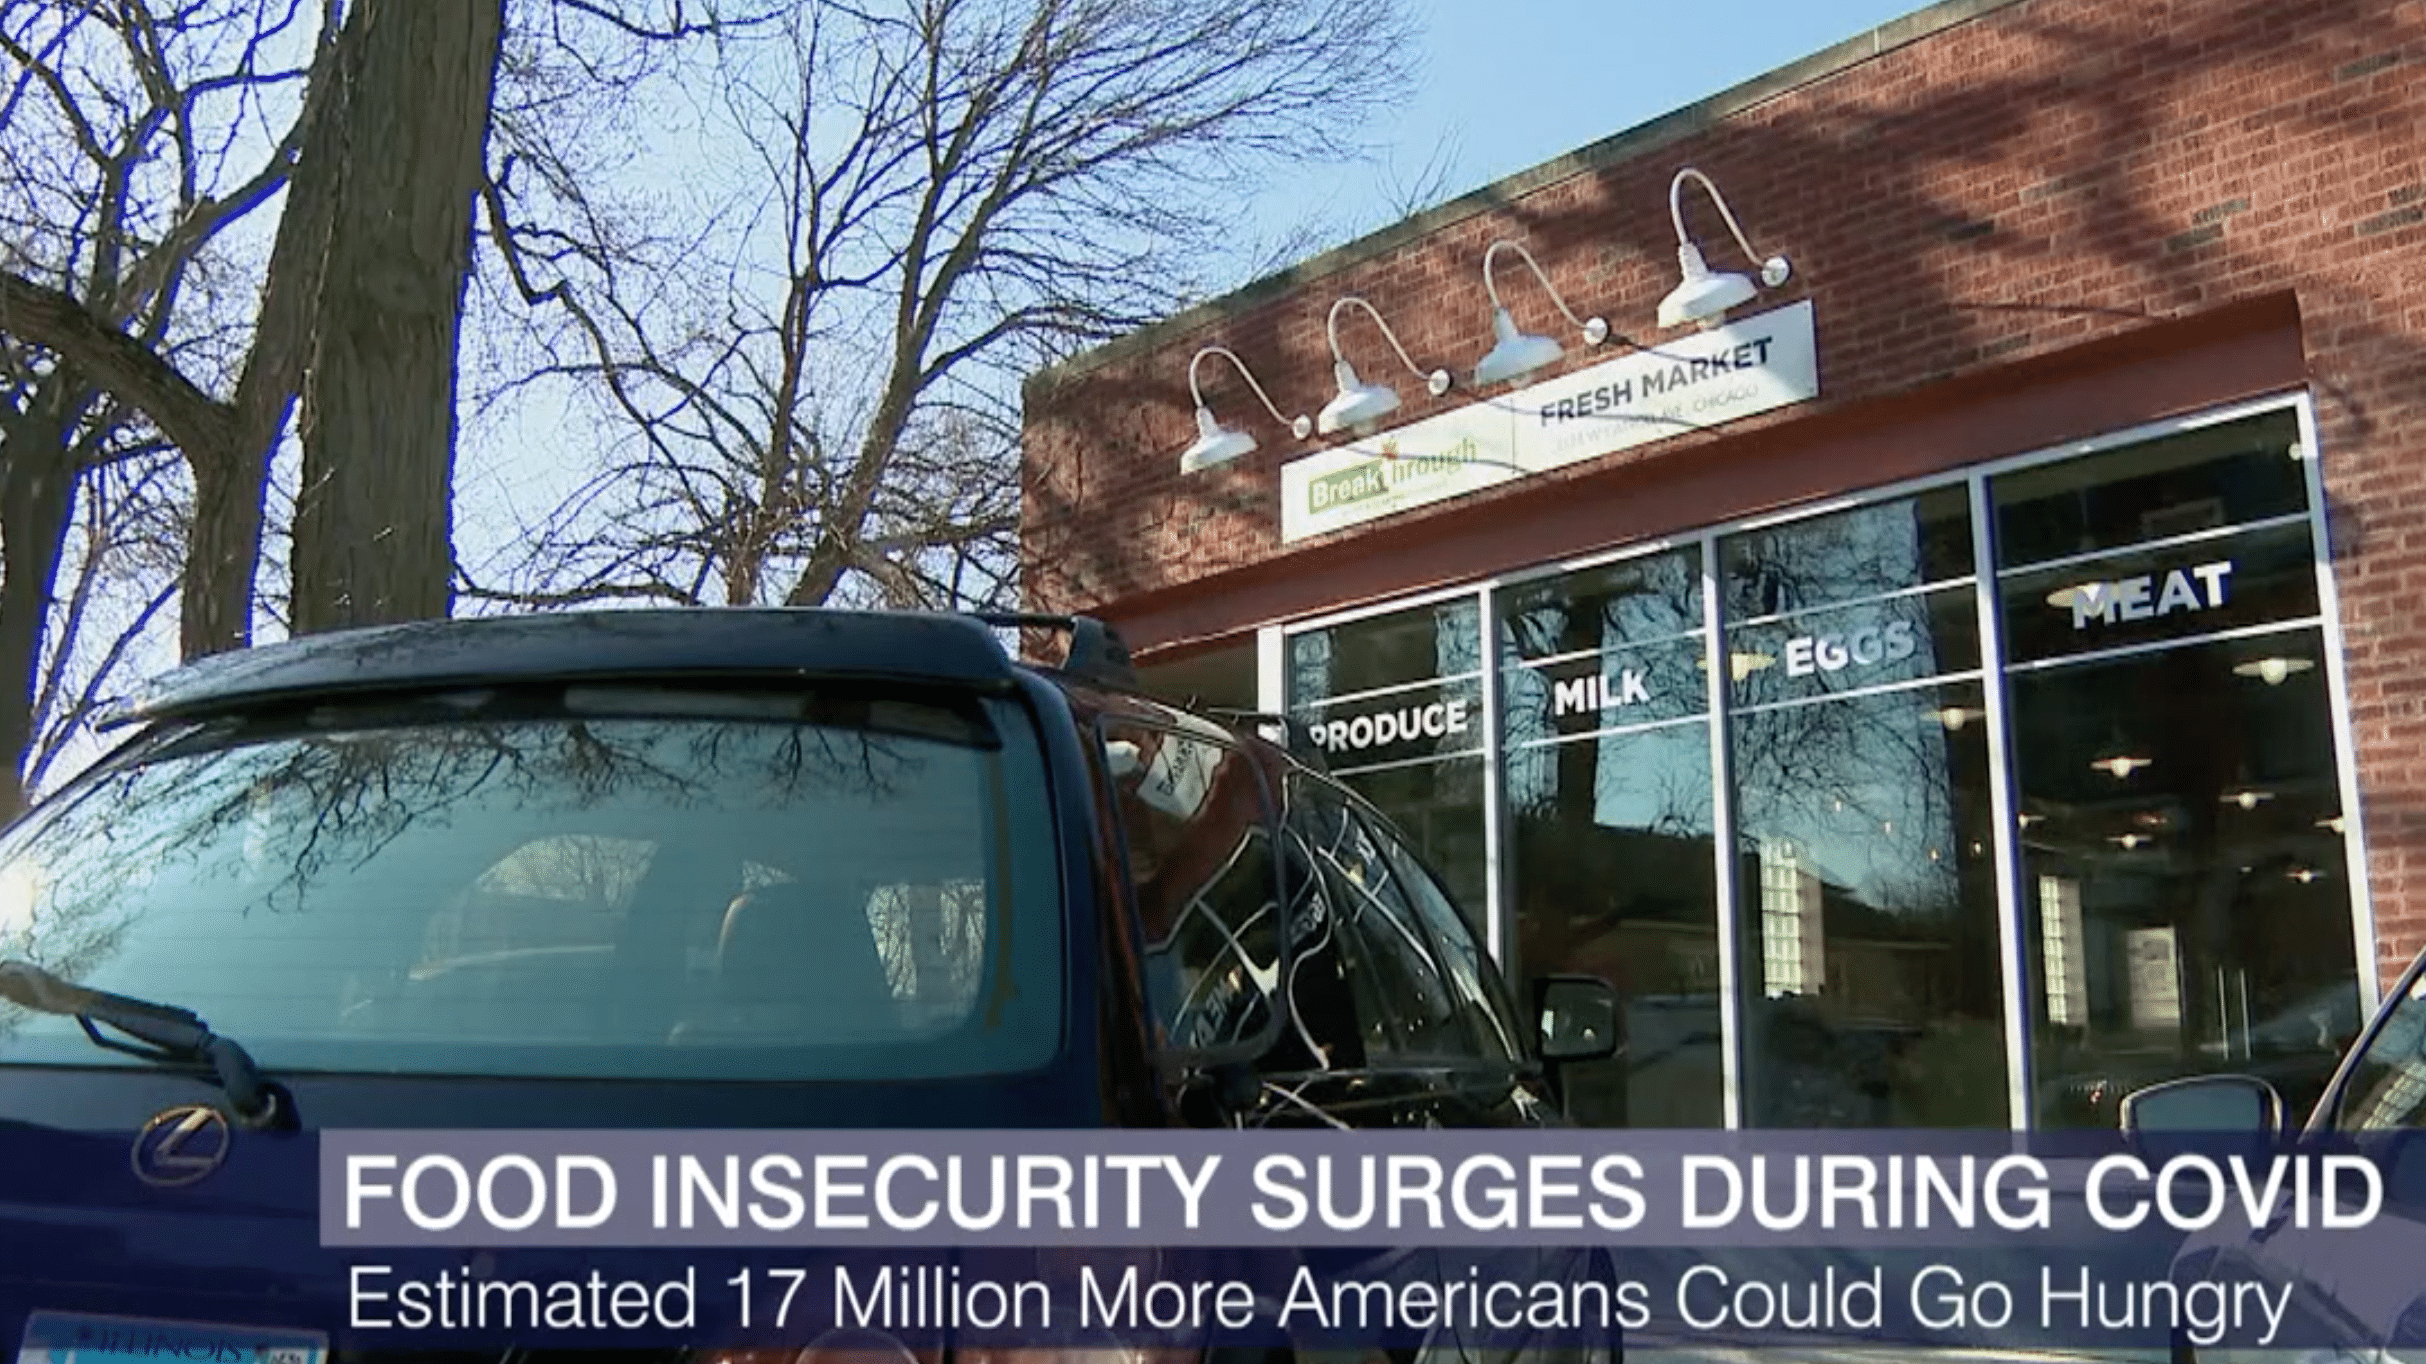 Food Insecurity Still High Amid Pandemic in City, Suburbs and Rural Areas Alike 3